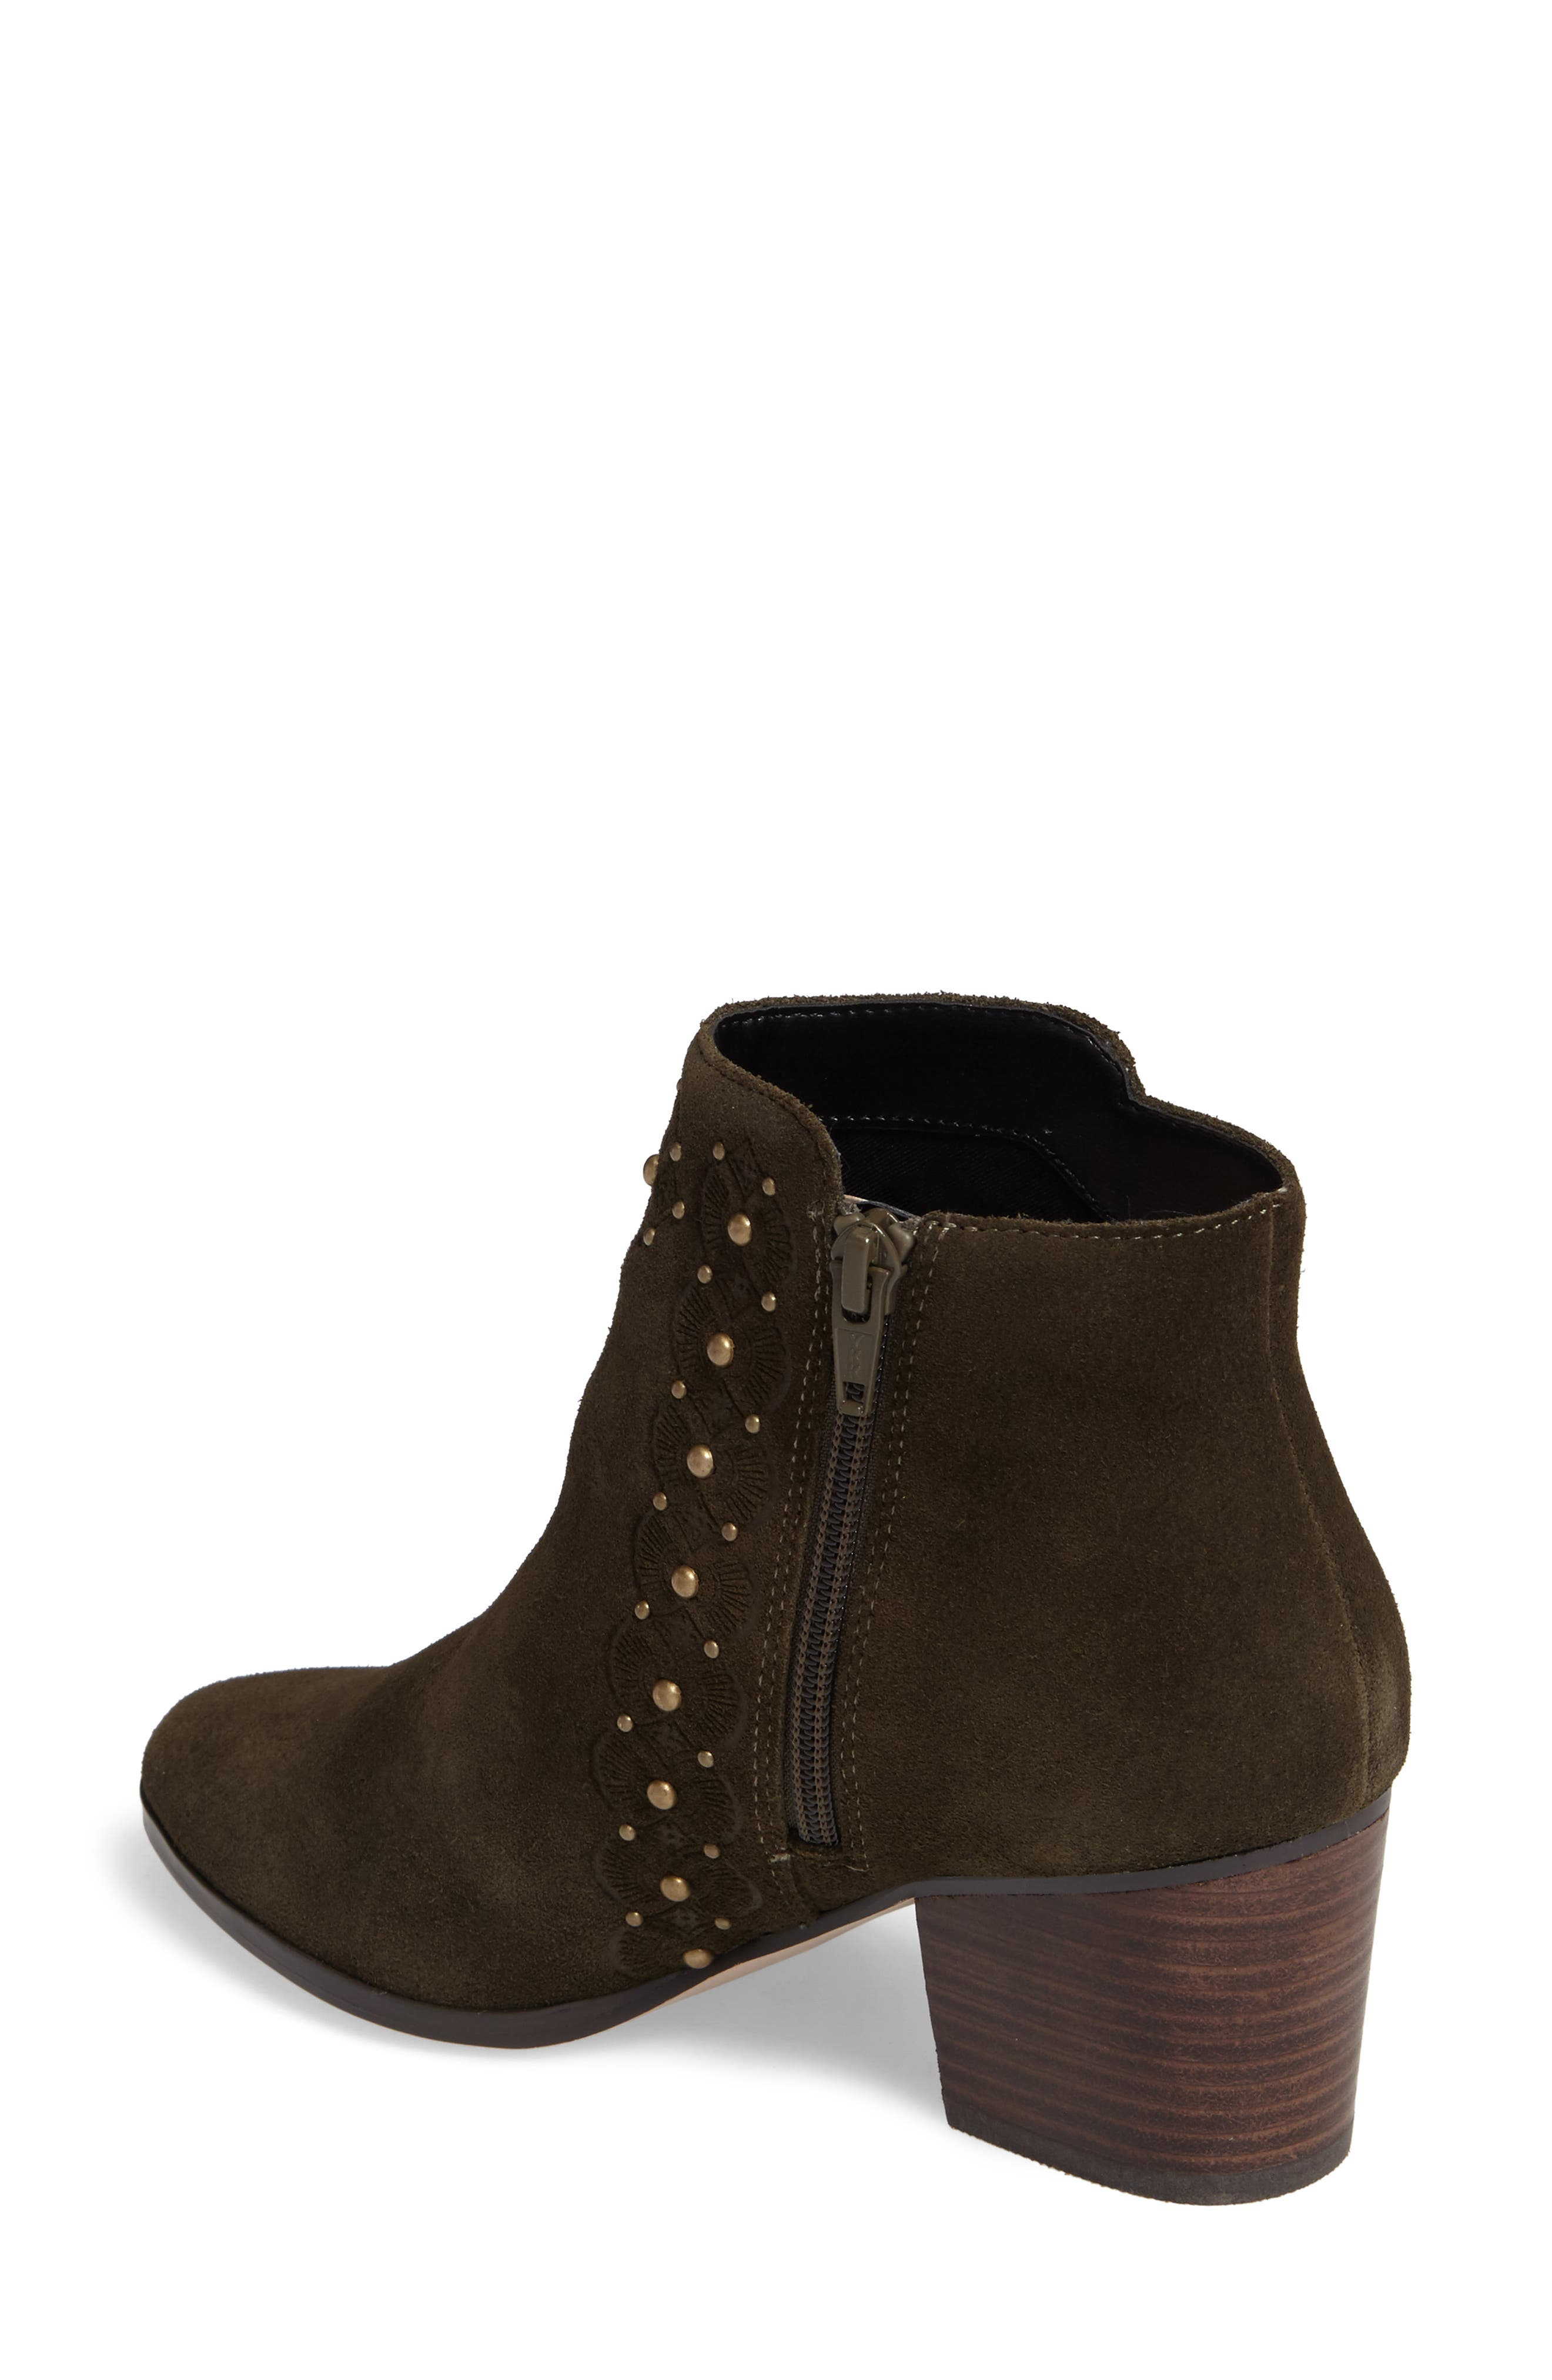 Gala Studded Embossed Bootie,                             Alternate thumbnail 6, color,